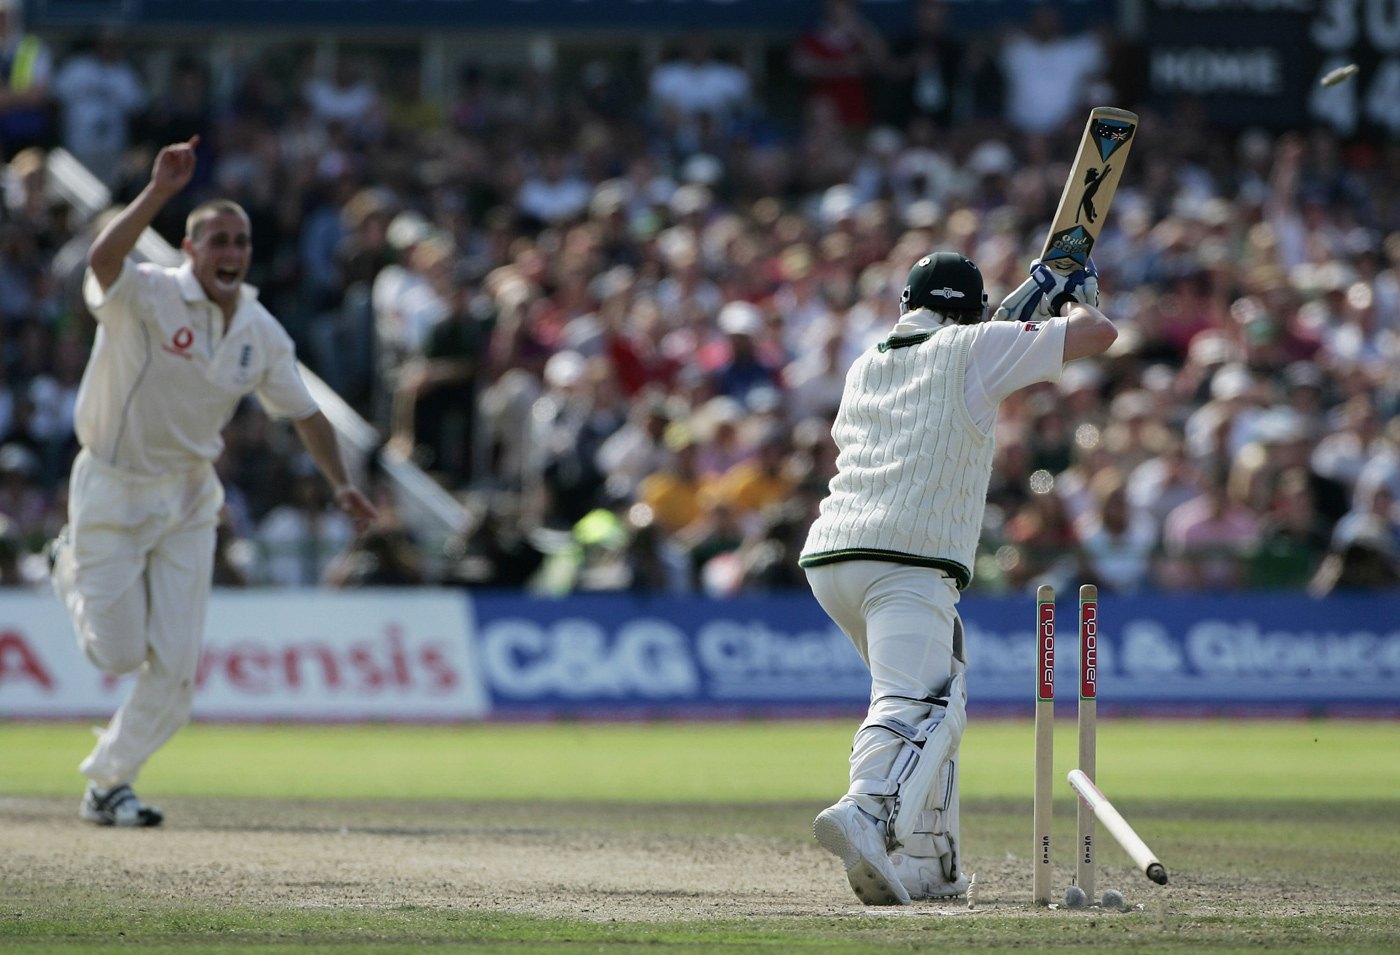 Simon Jones' dismissal of Michael Clarke in the third Test of the 2005 Ashes is an iconic moment from that great series